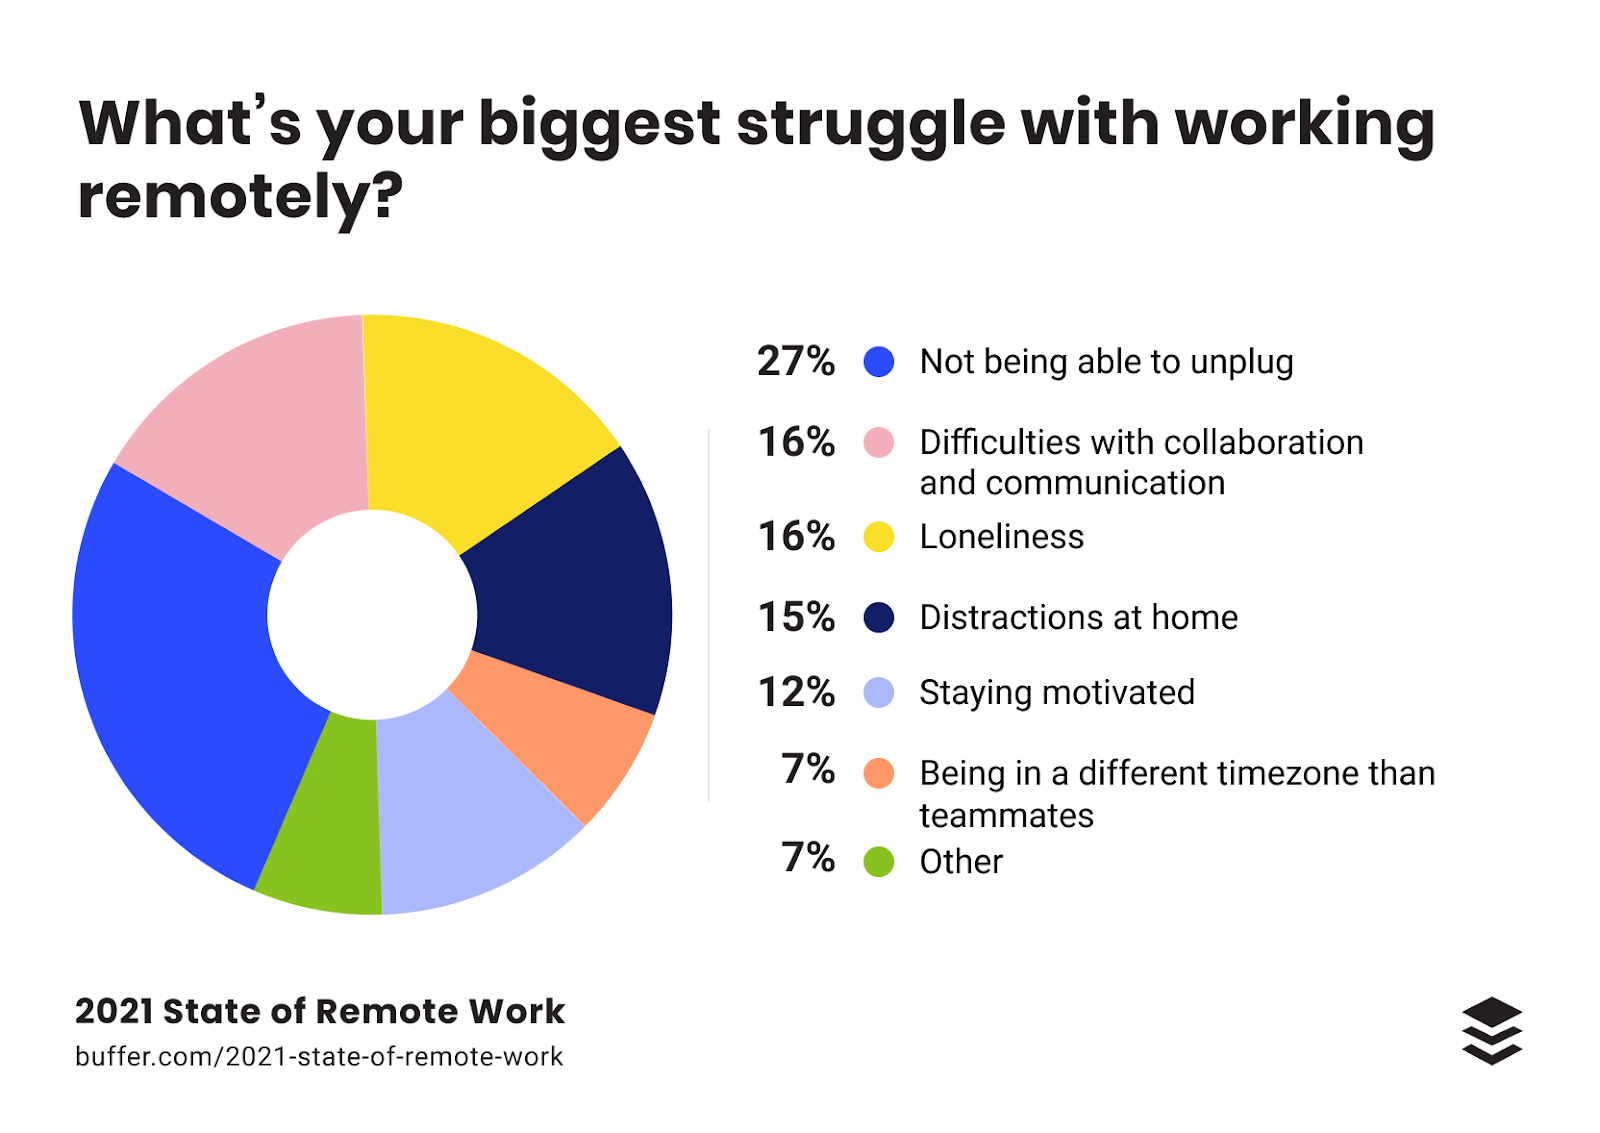 remote work statistics have changed in 2021